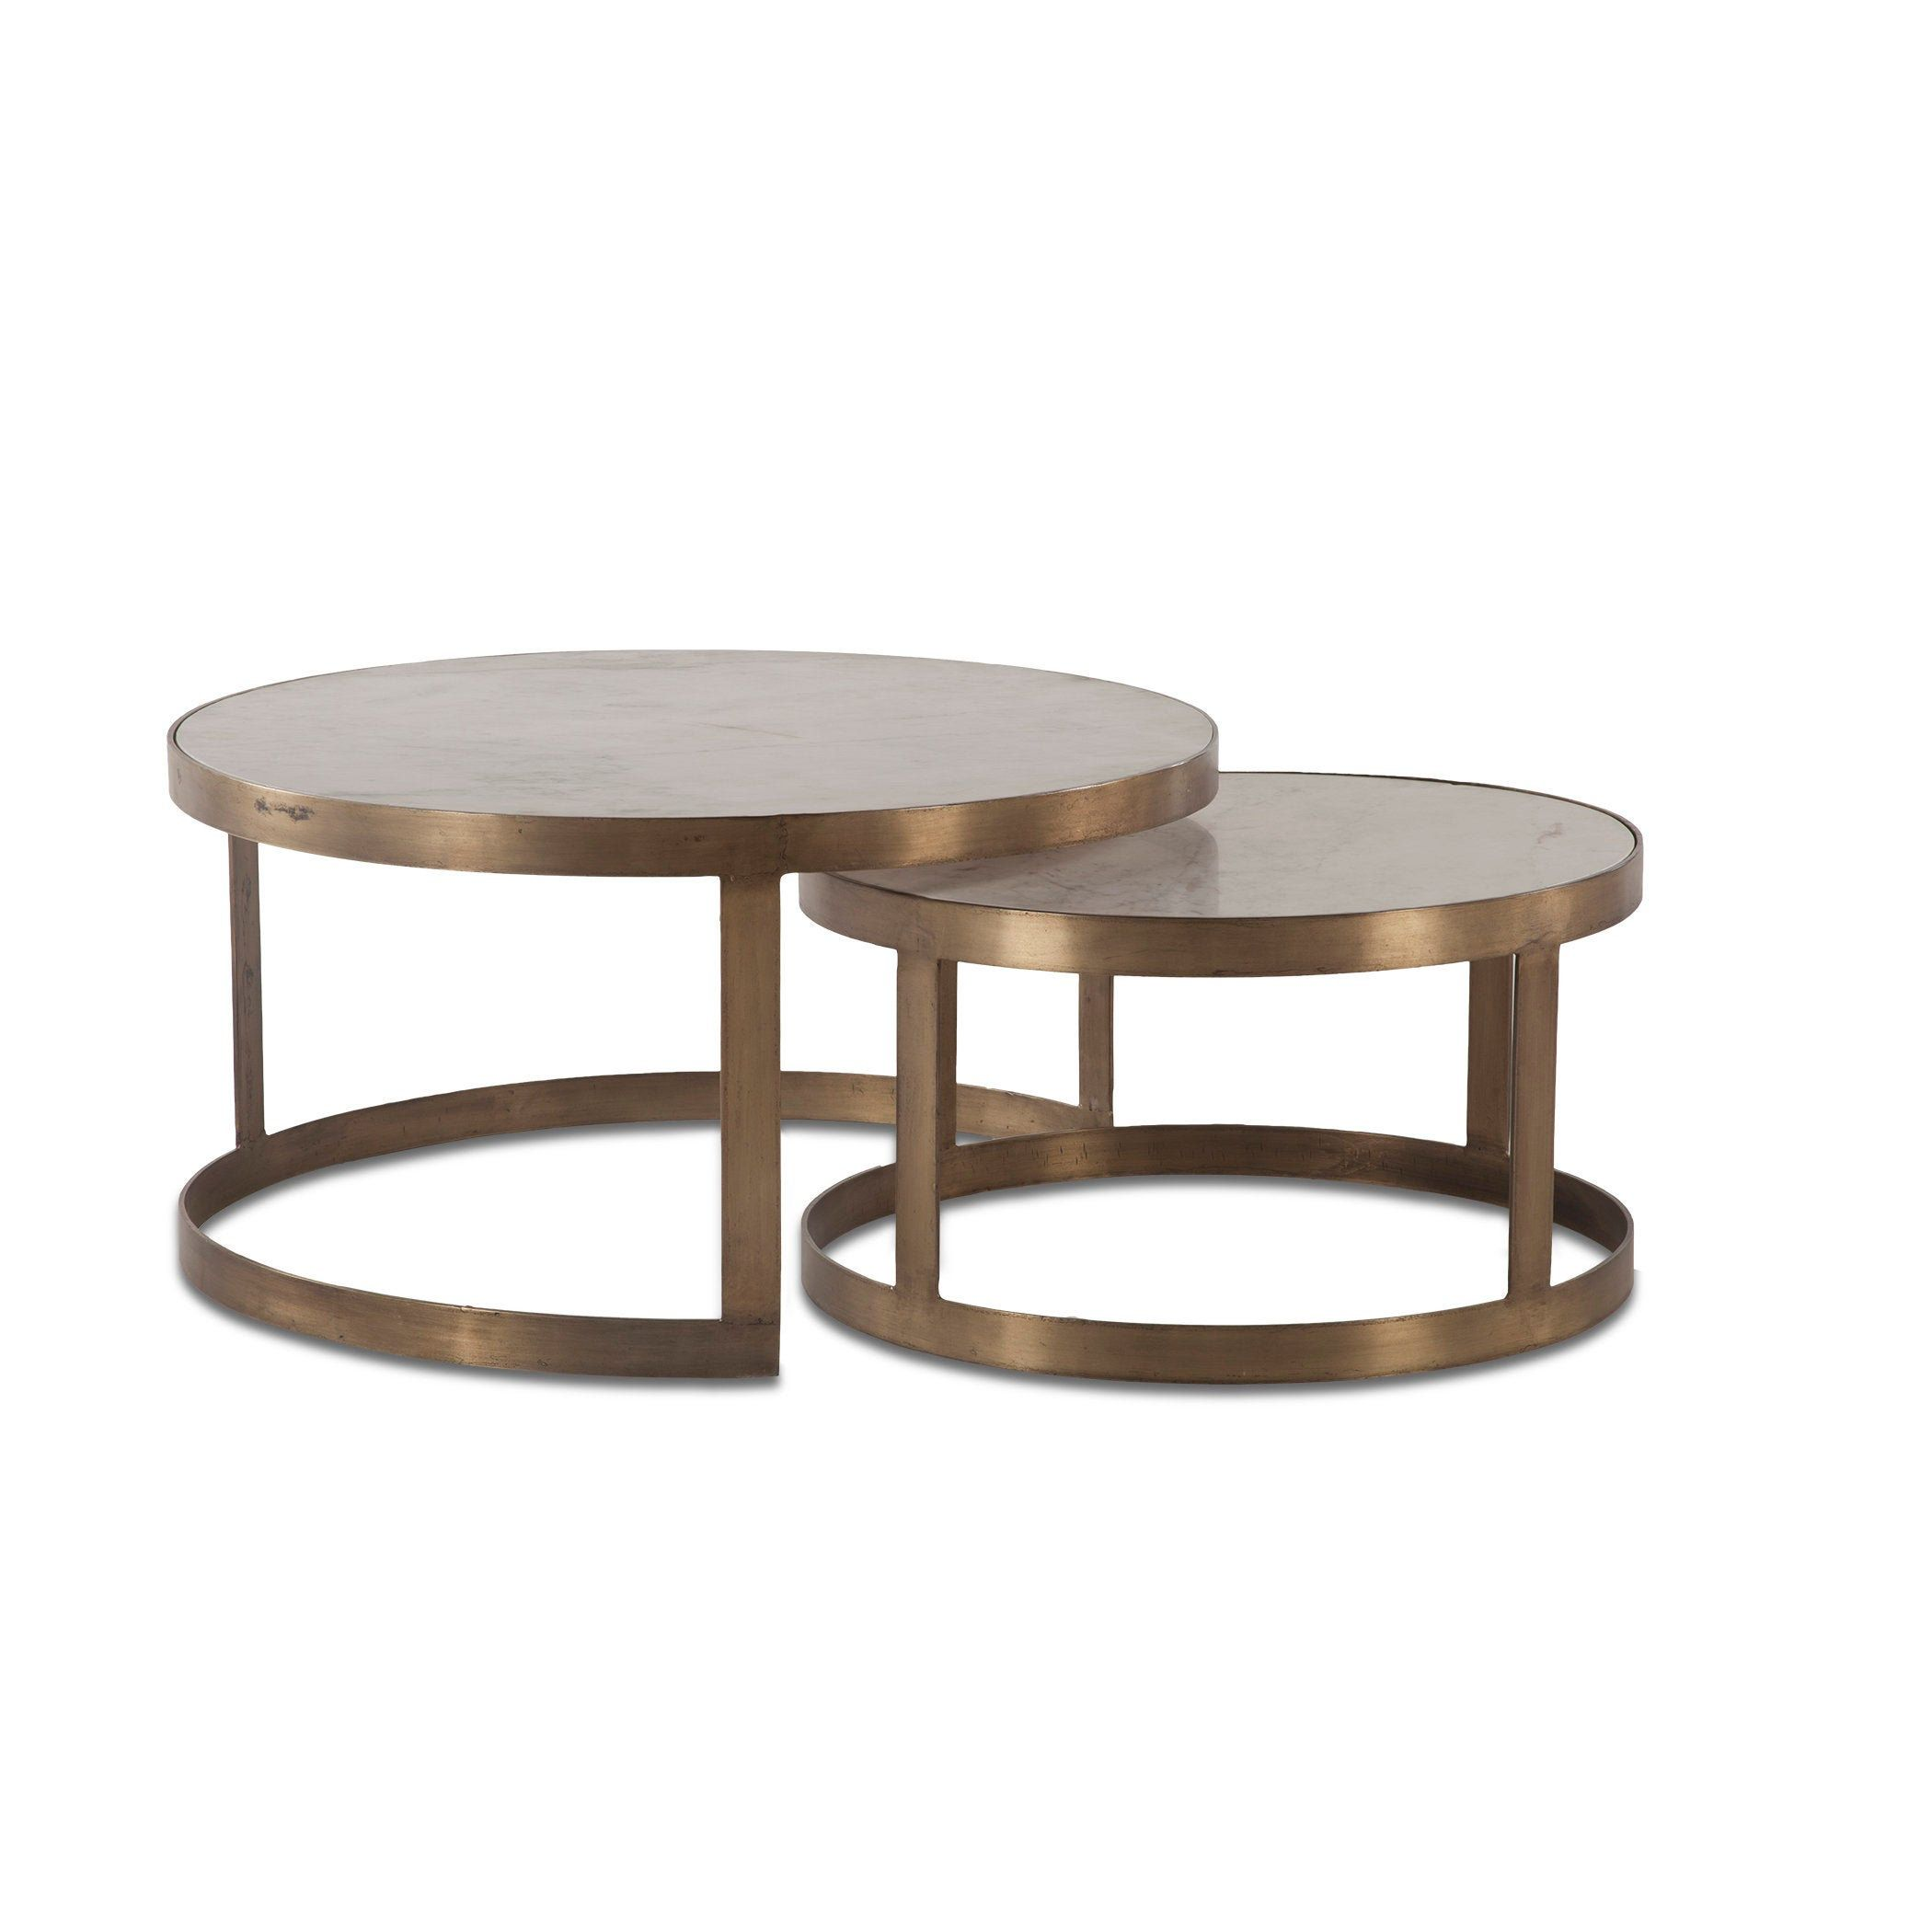 Coffee Table Marble Coffee Table Round Coffee Table Nesting Etsy In 2021 Nesting Coffee Tables Marble Round Coffee Table Gold Nesting Coffee Table [ 2100 x 2100 Pixel ]